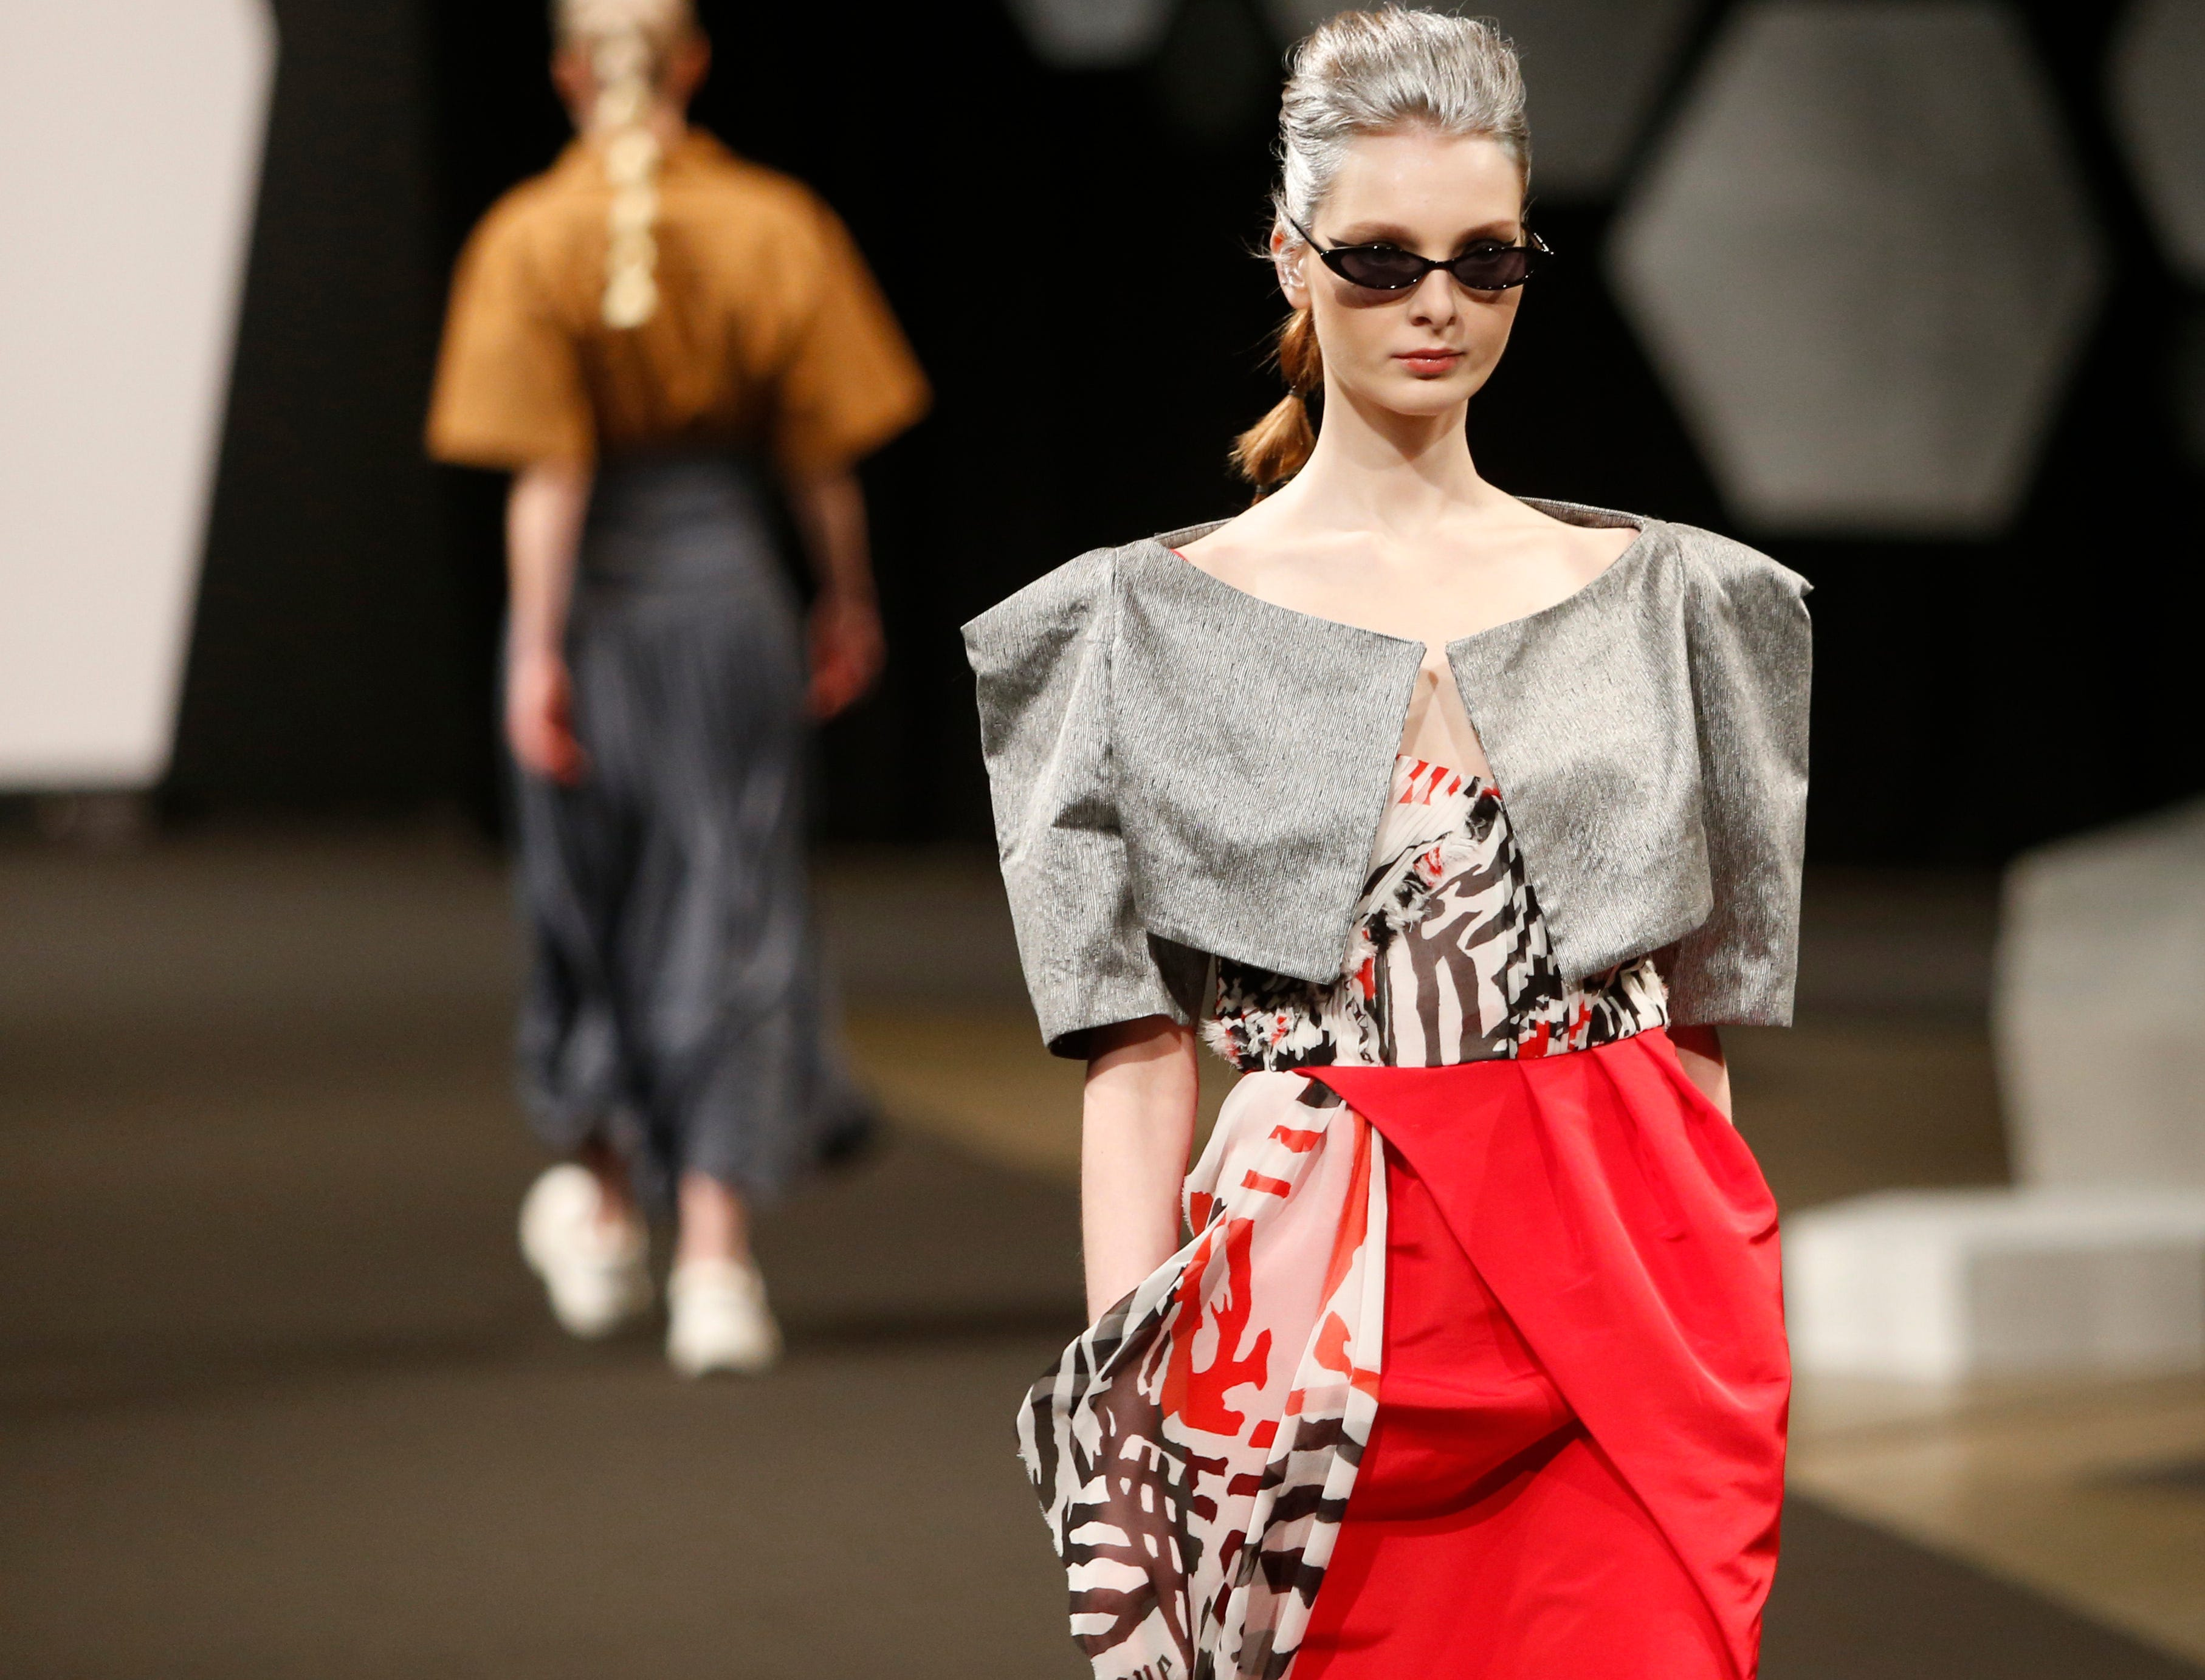 Designs from the collection of Marist College Fashion Department senior Olivia Spathakis during the 33rd Marist College Silver Needle Runway Show on May 10, 2019.